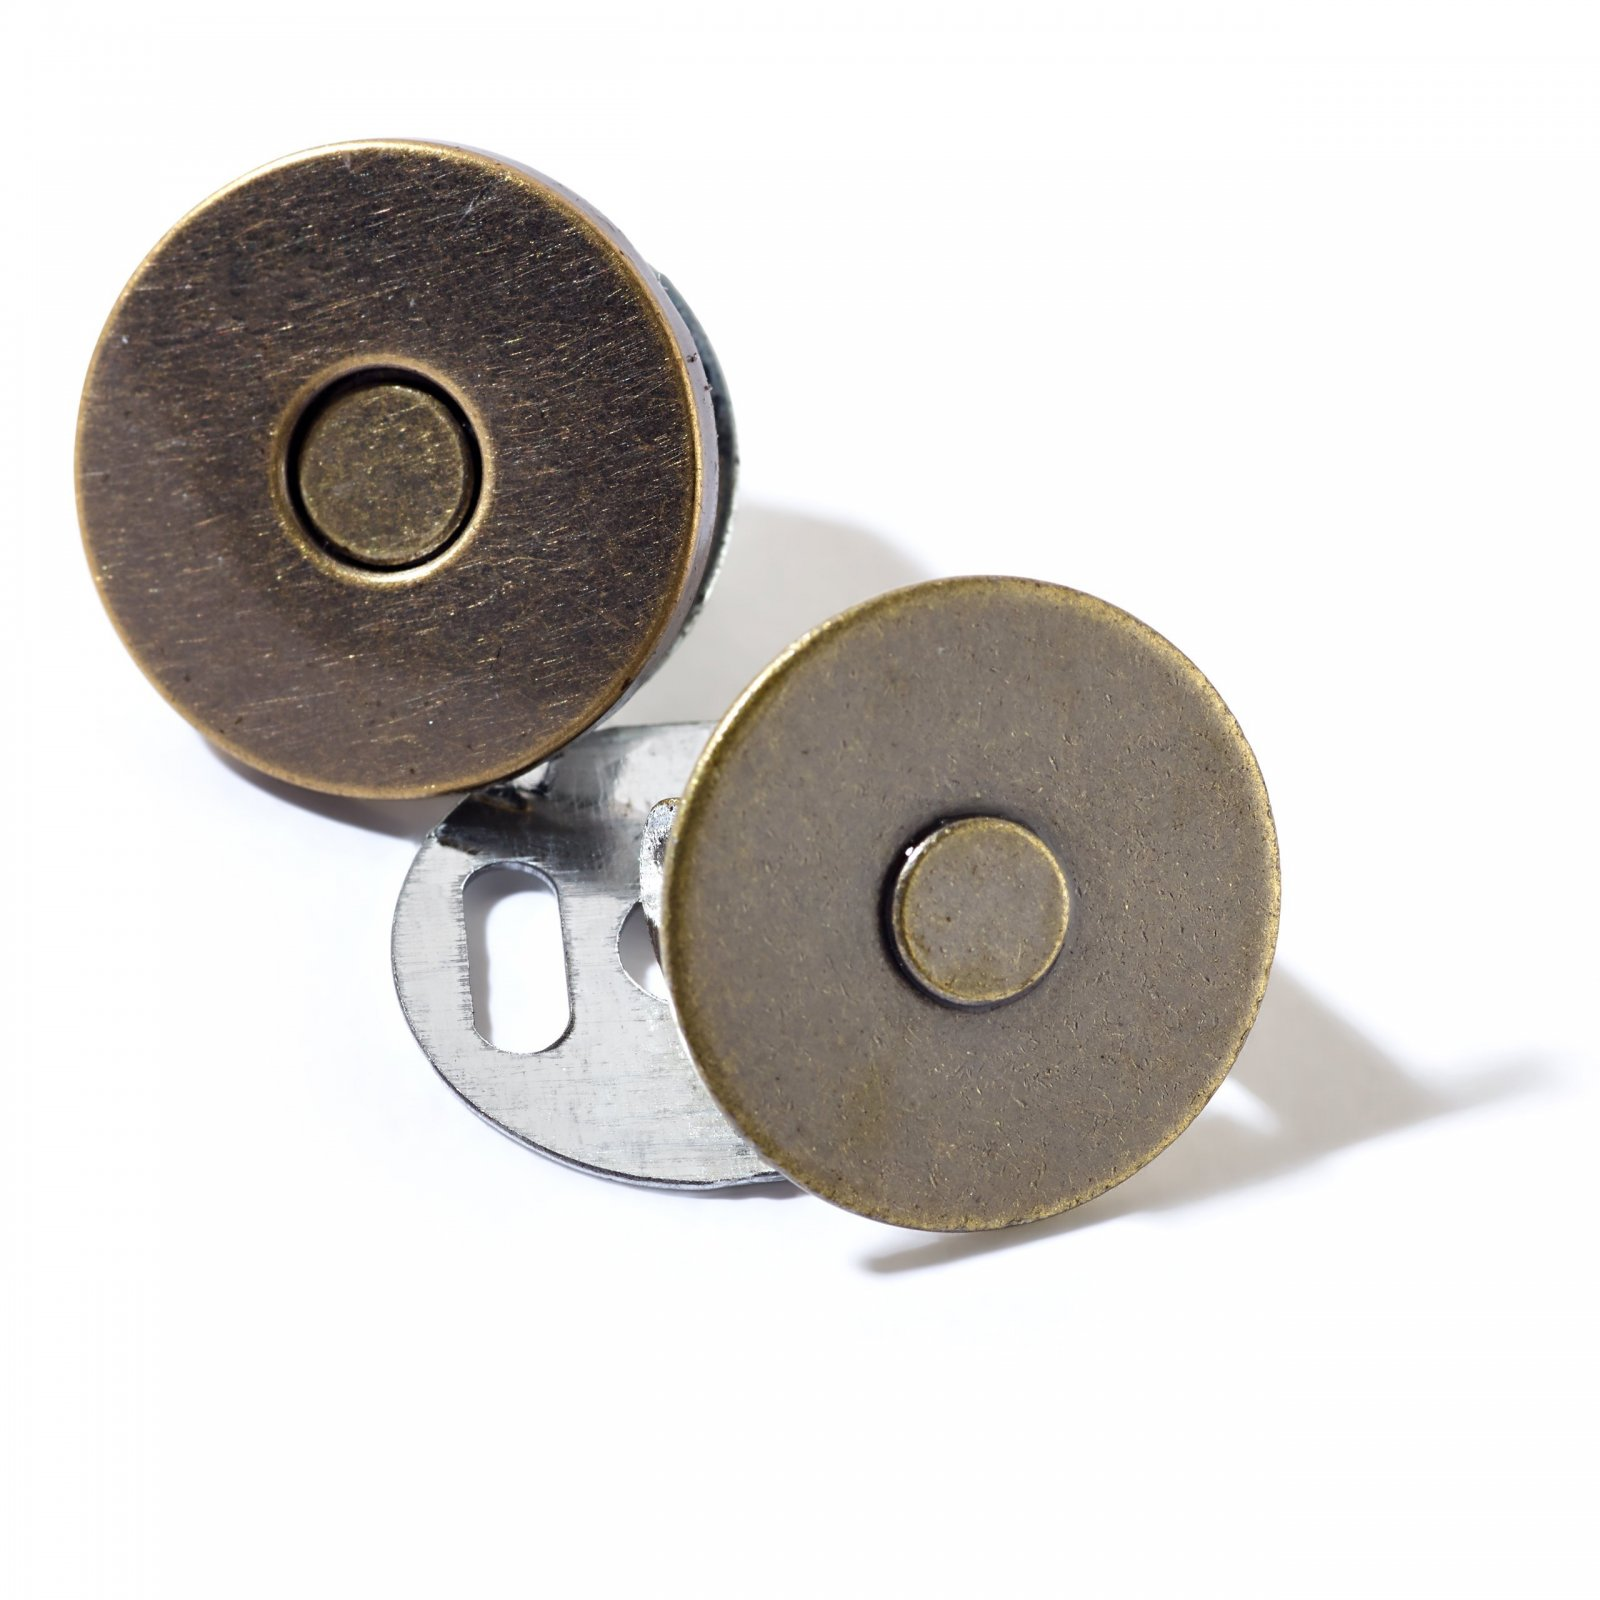 2 Magnetic Snaps